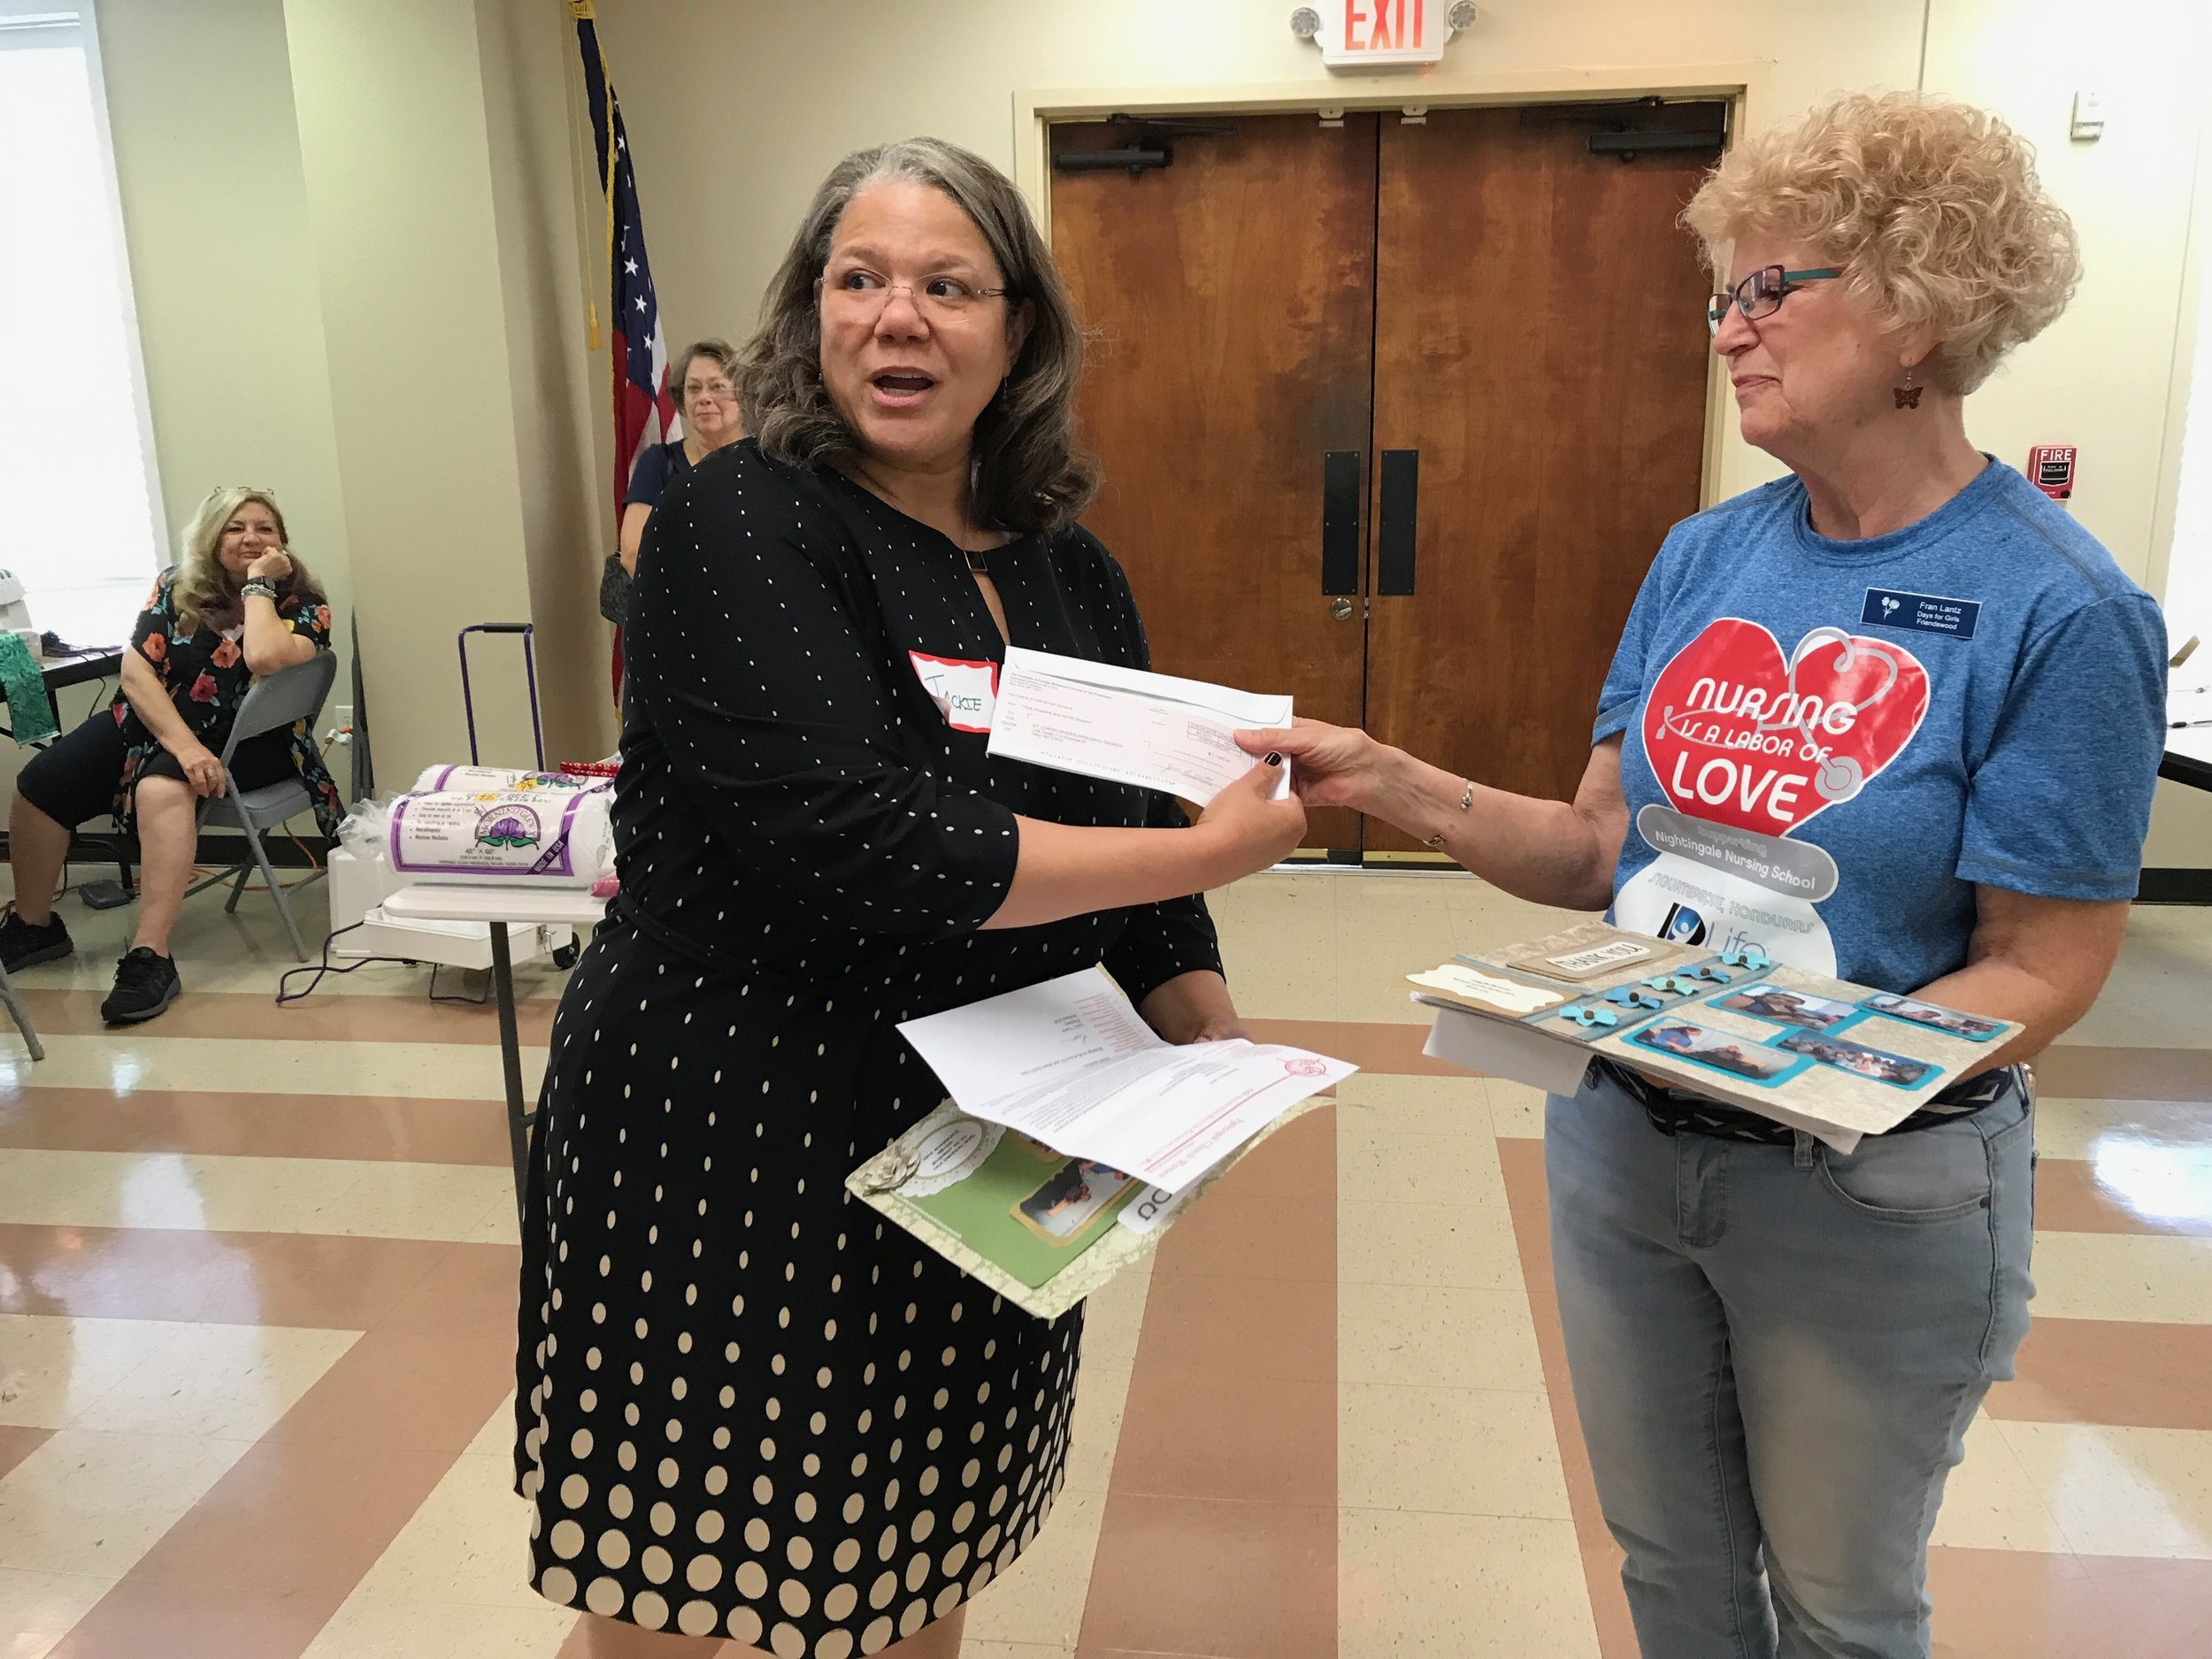 Jackie Meeks, Province VII Representative to the National ECW Board, presents the grant check to Fran Lantz, advocator for Days for Girls in the Diocese of Texas.